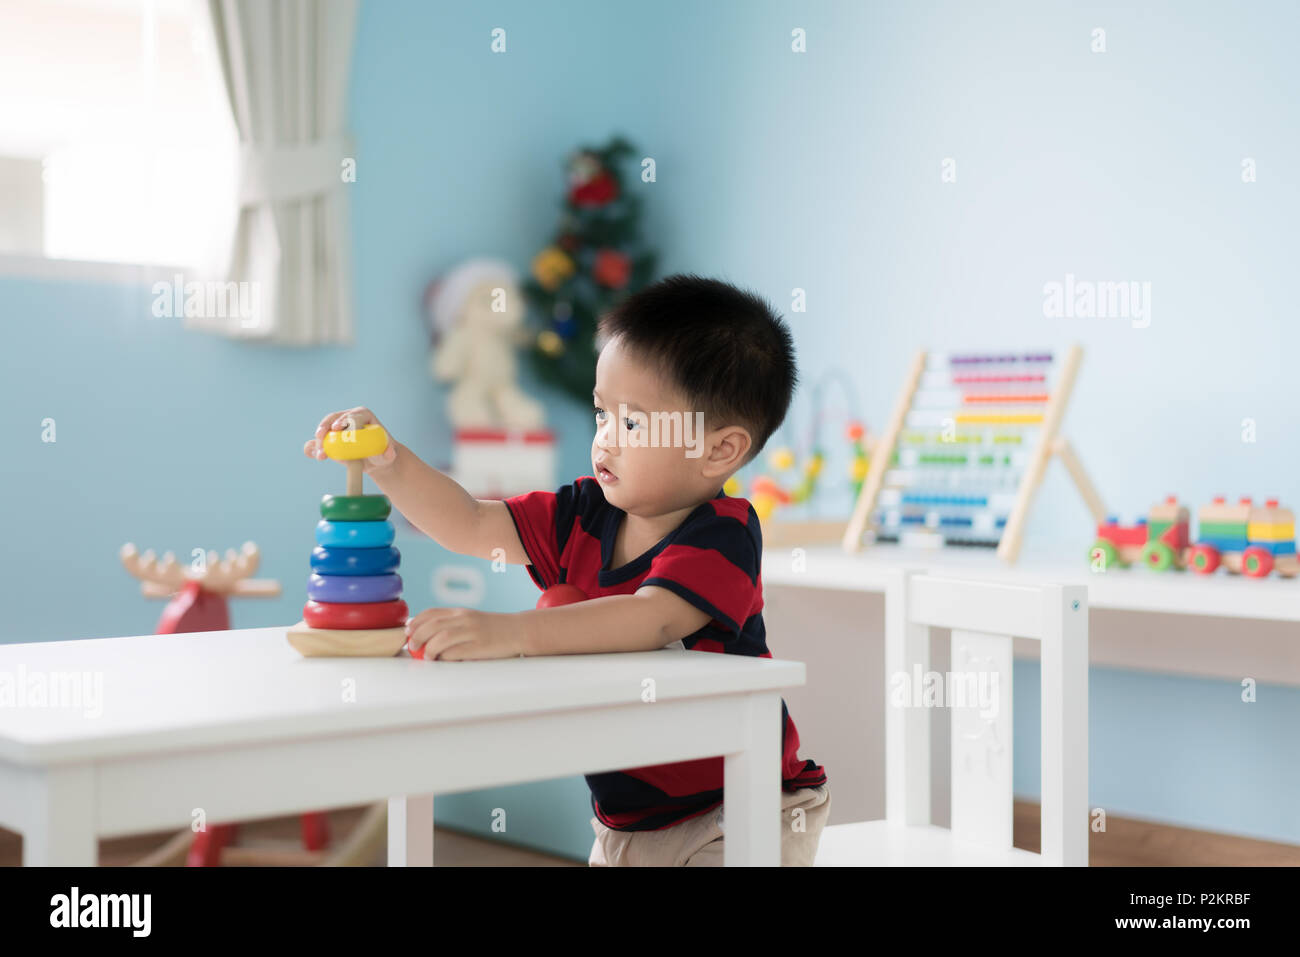 Adorable Asian Toddler baby boy sitting on chair and playing with color developmental toys at home. - Stock Image